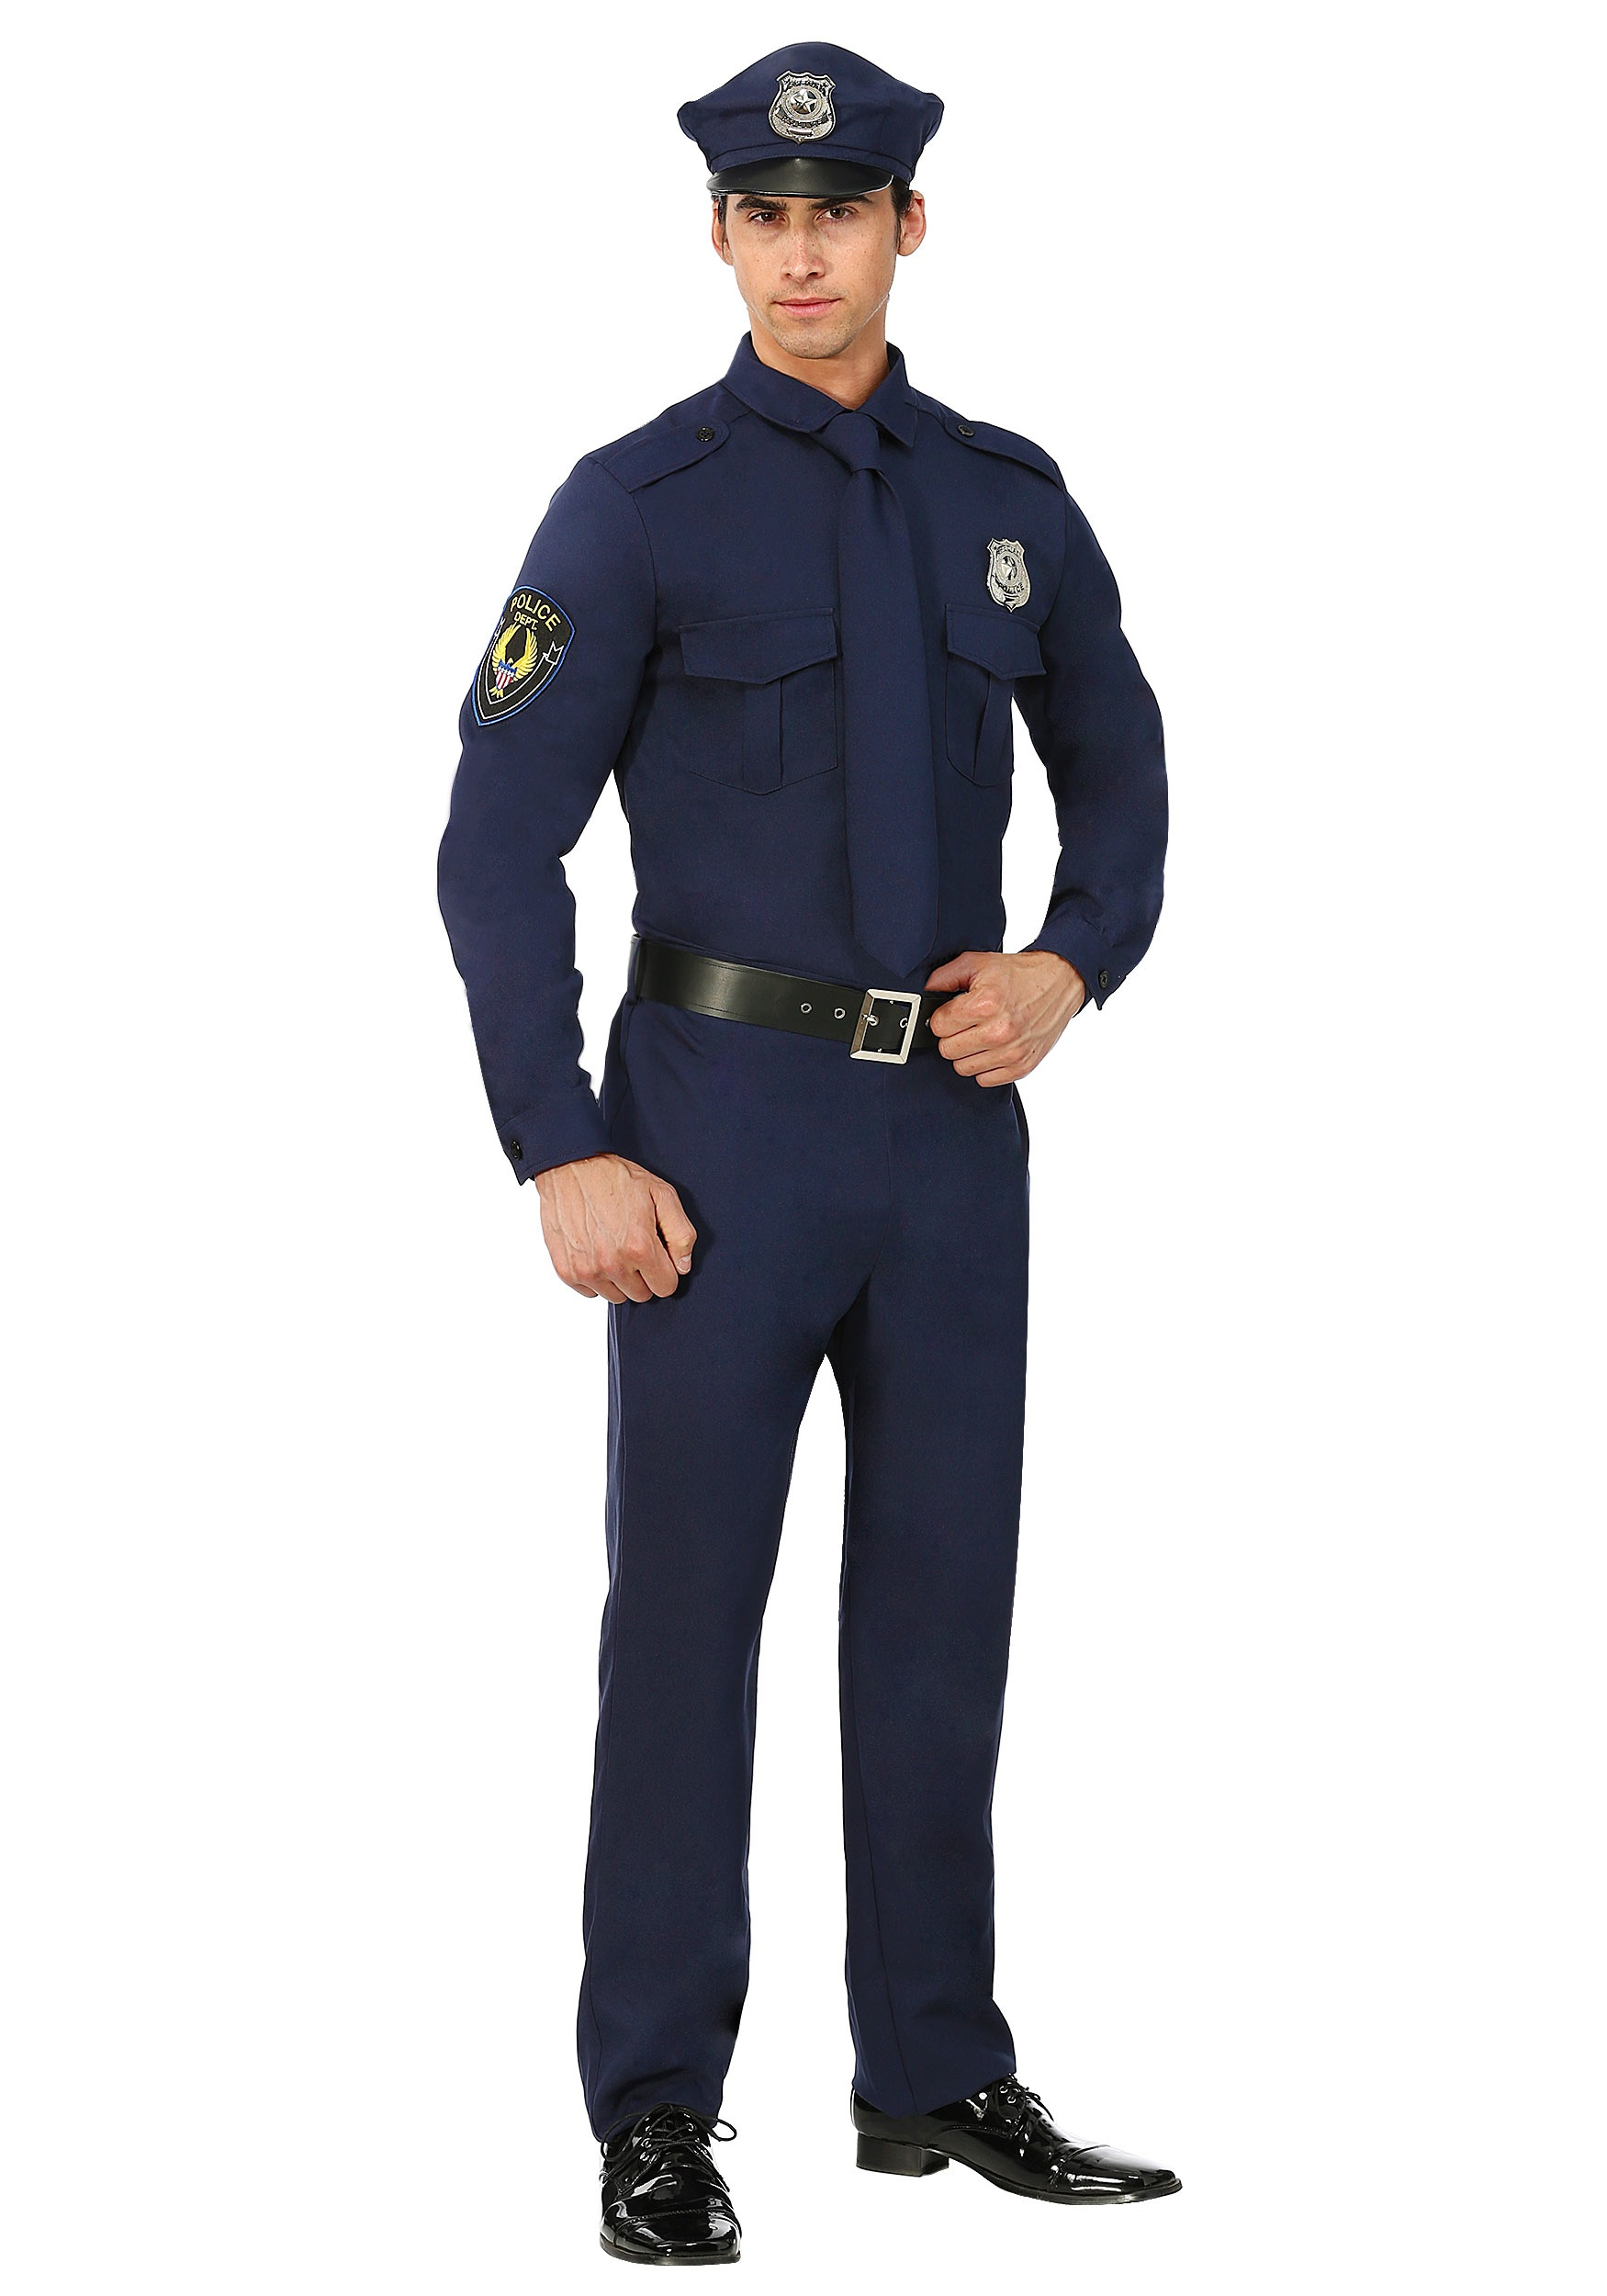 Men's Cop Costume for Plus Size | Police Officer Costume